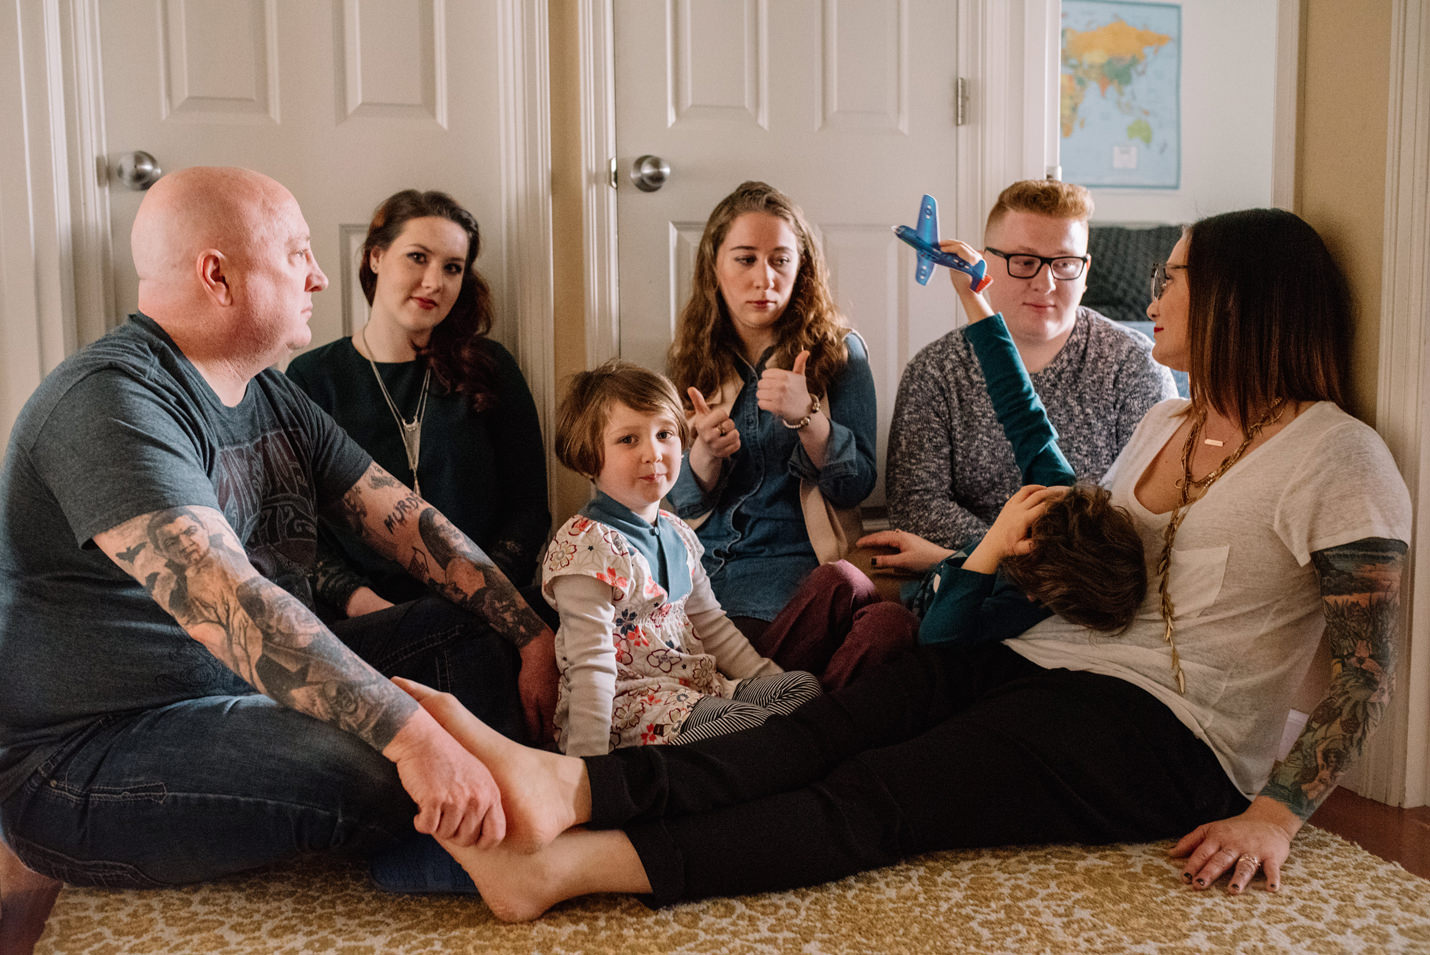 seattle-family-photographer-squillaces-2016_0609.JPG